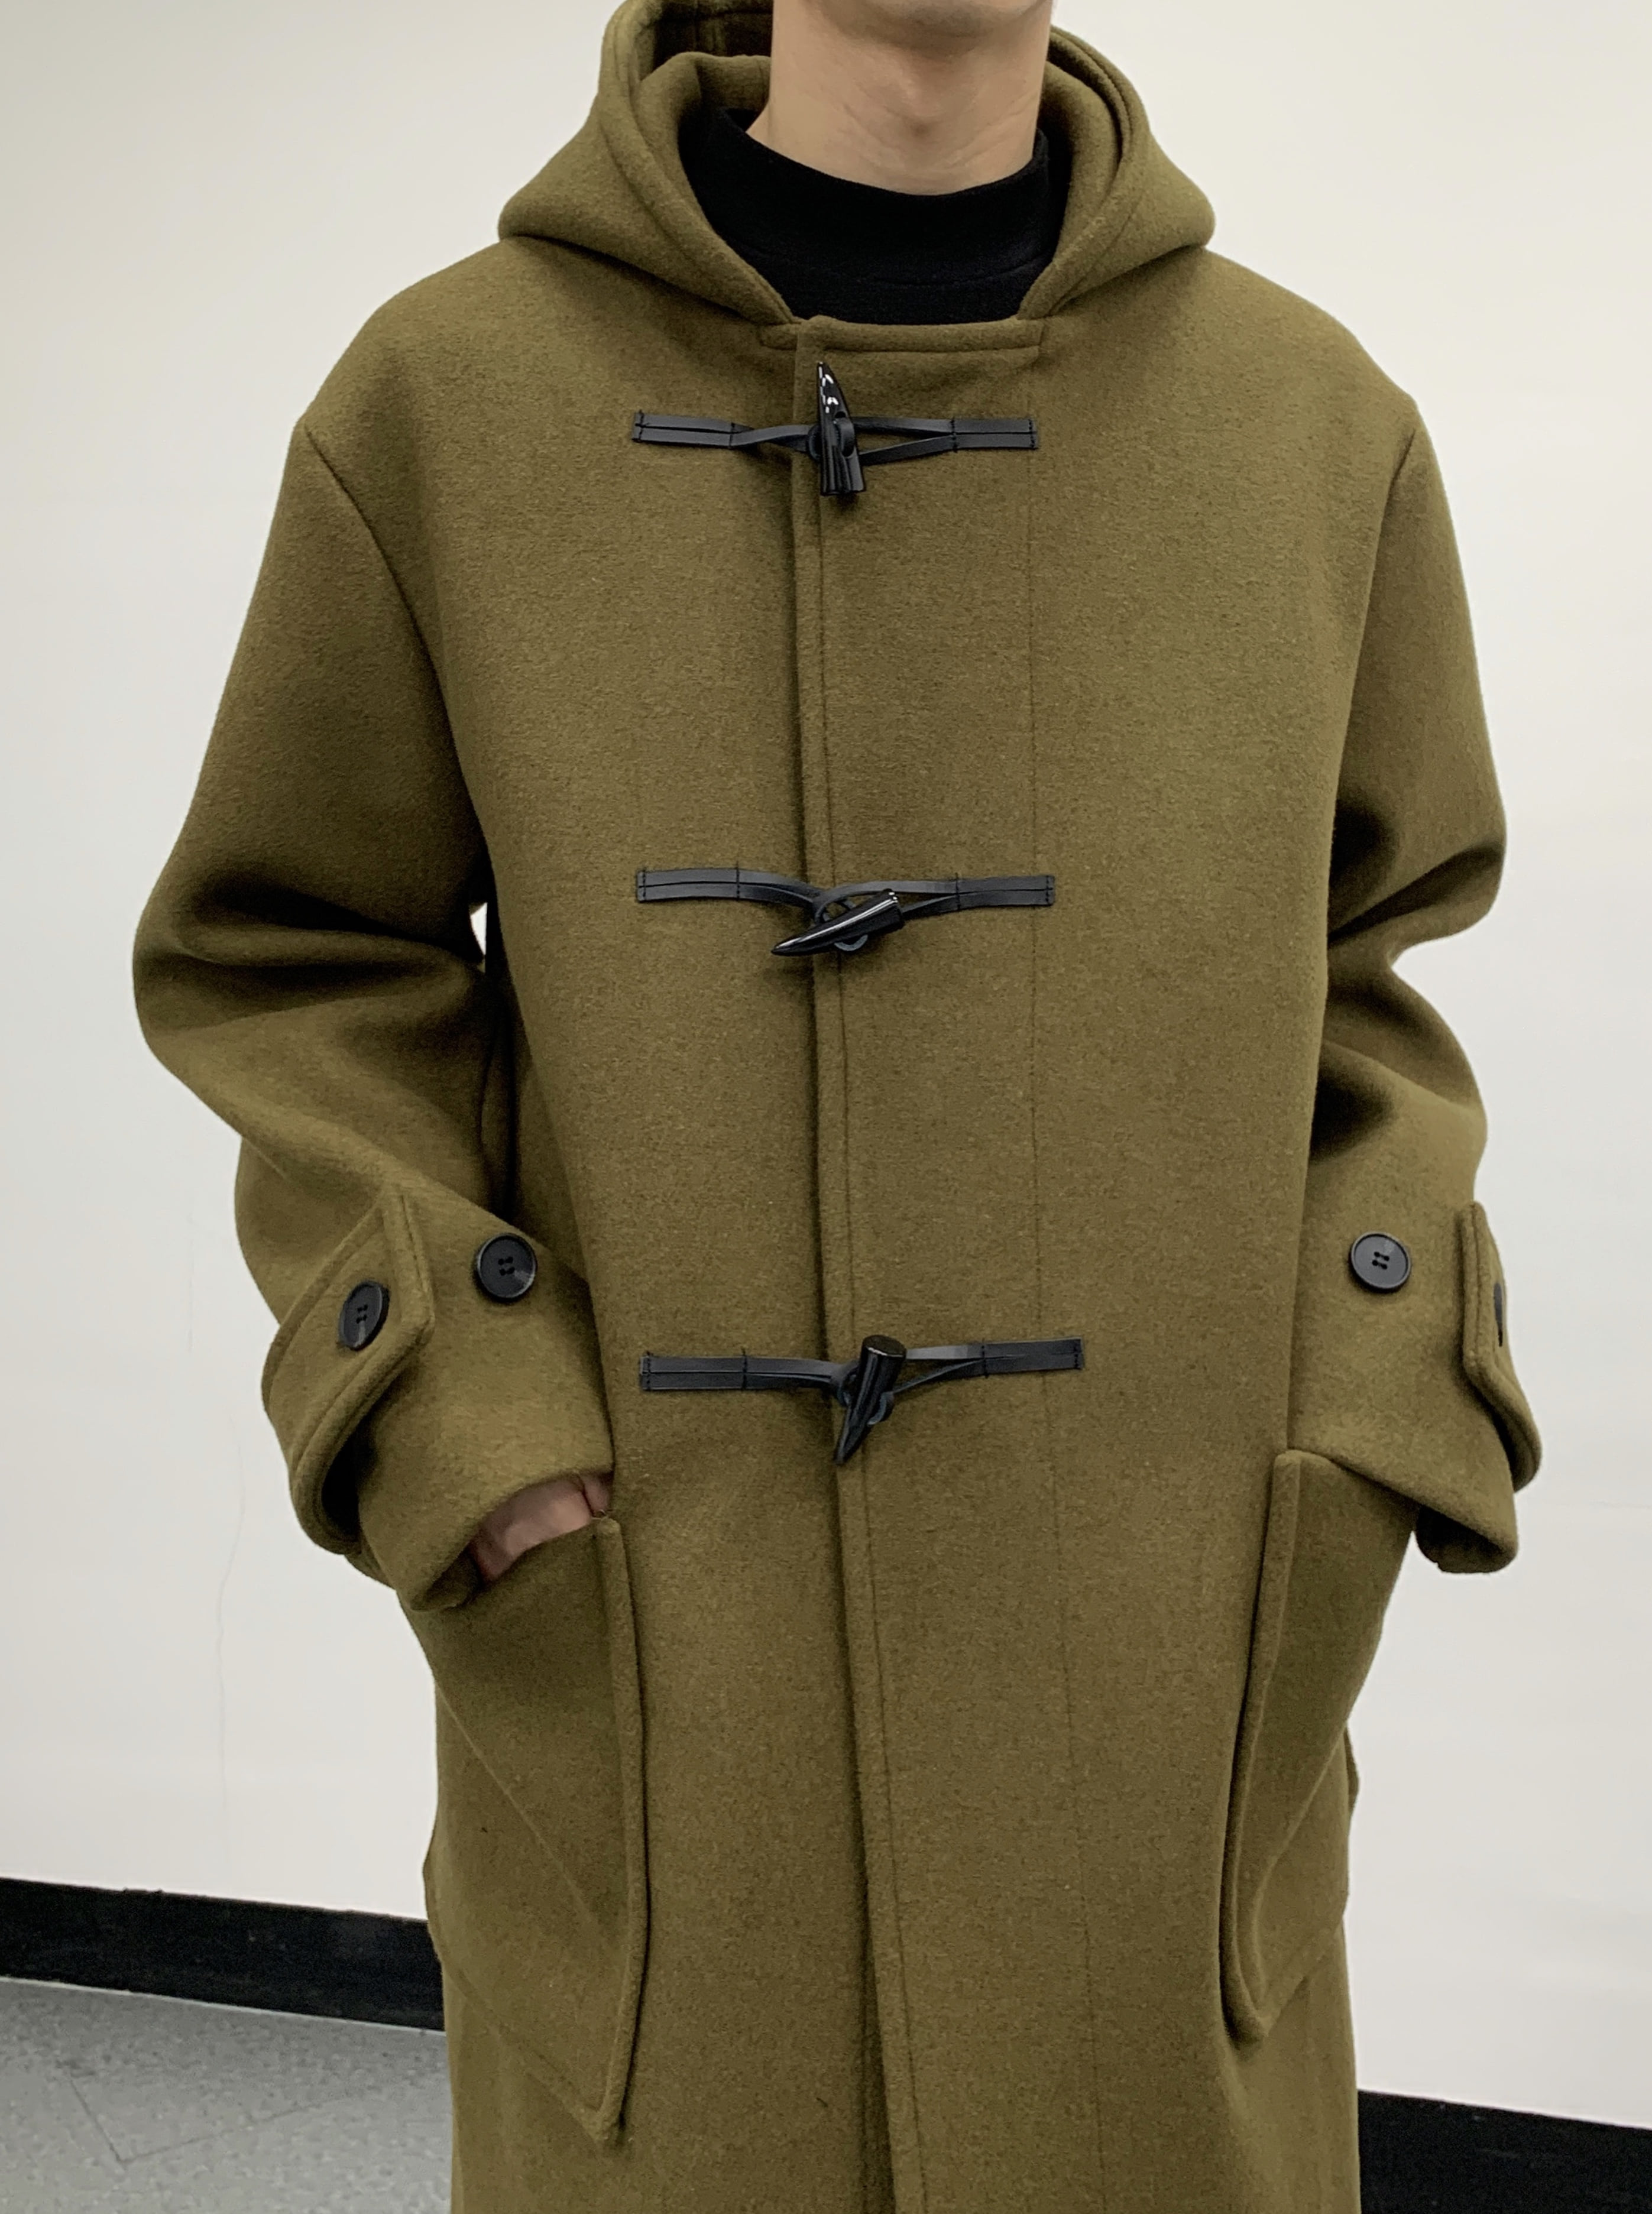 To semiover standard duffle coat